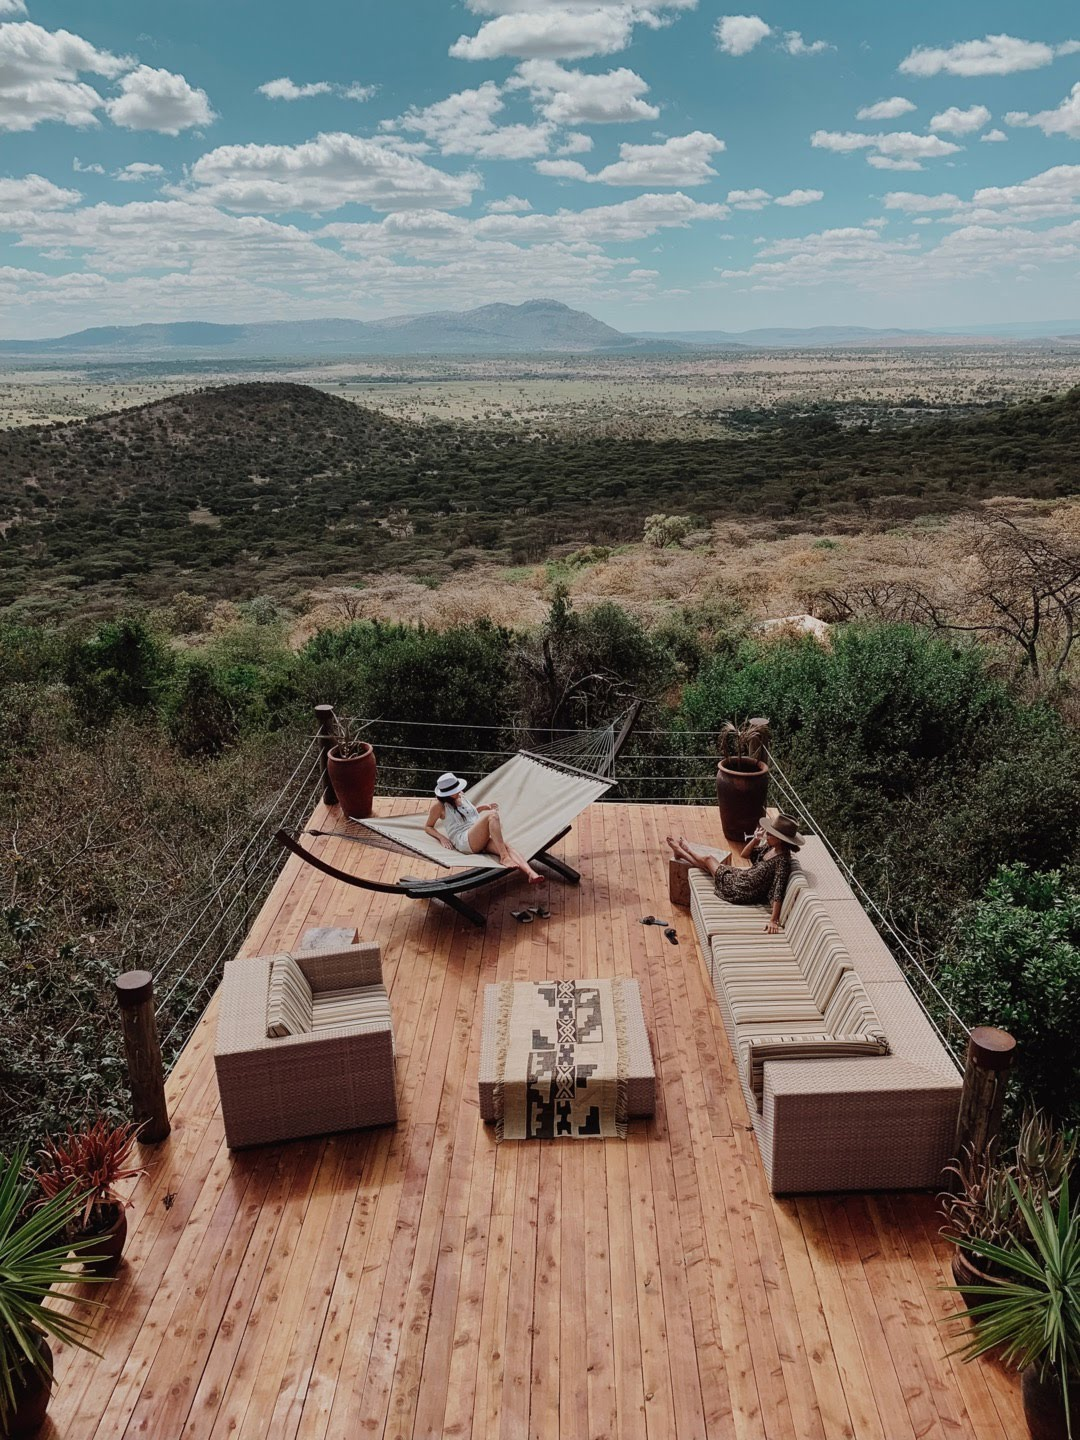 Relaxing in the Bush Villa at Cottars 1920s Camp Ph. Valorie Darling